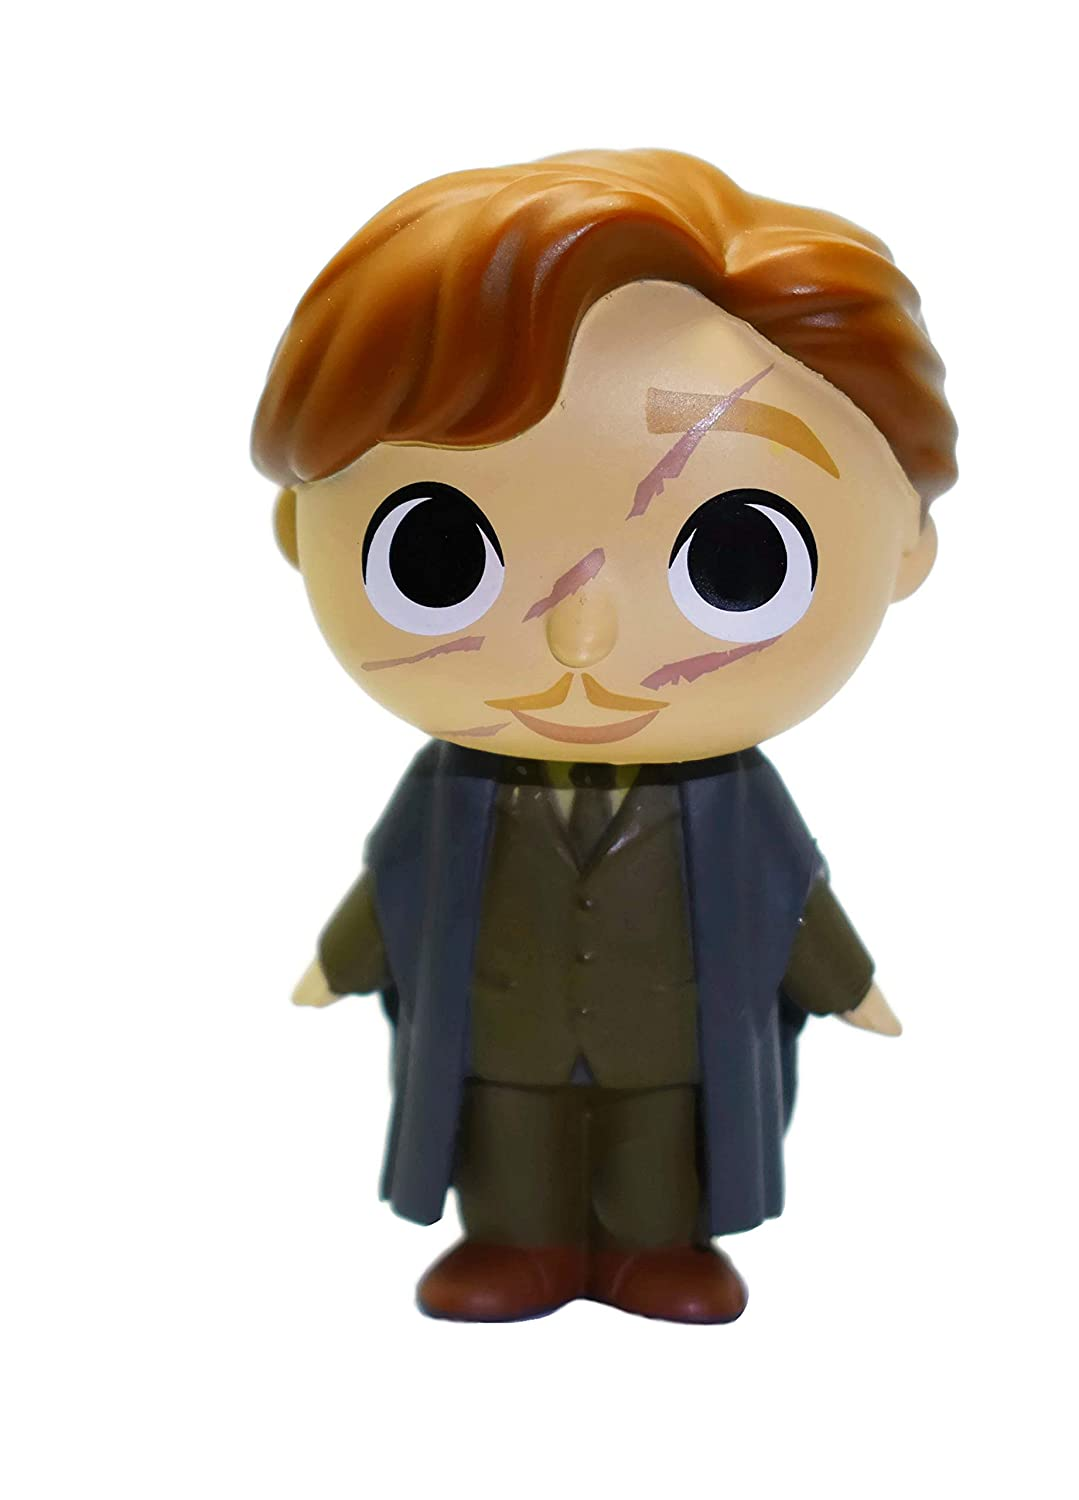 1//36 Rarity RARE! Funko Mystery Mini - Professor Remus Lupin Harry Potter Series 2